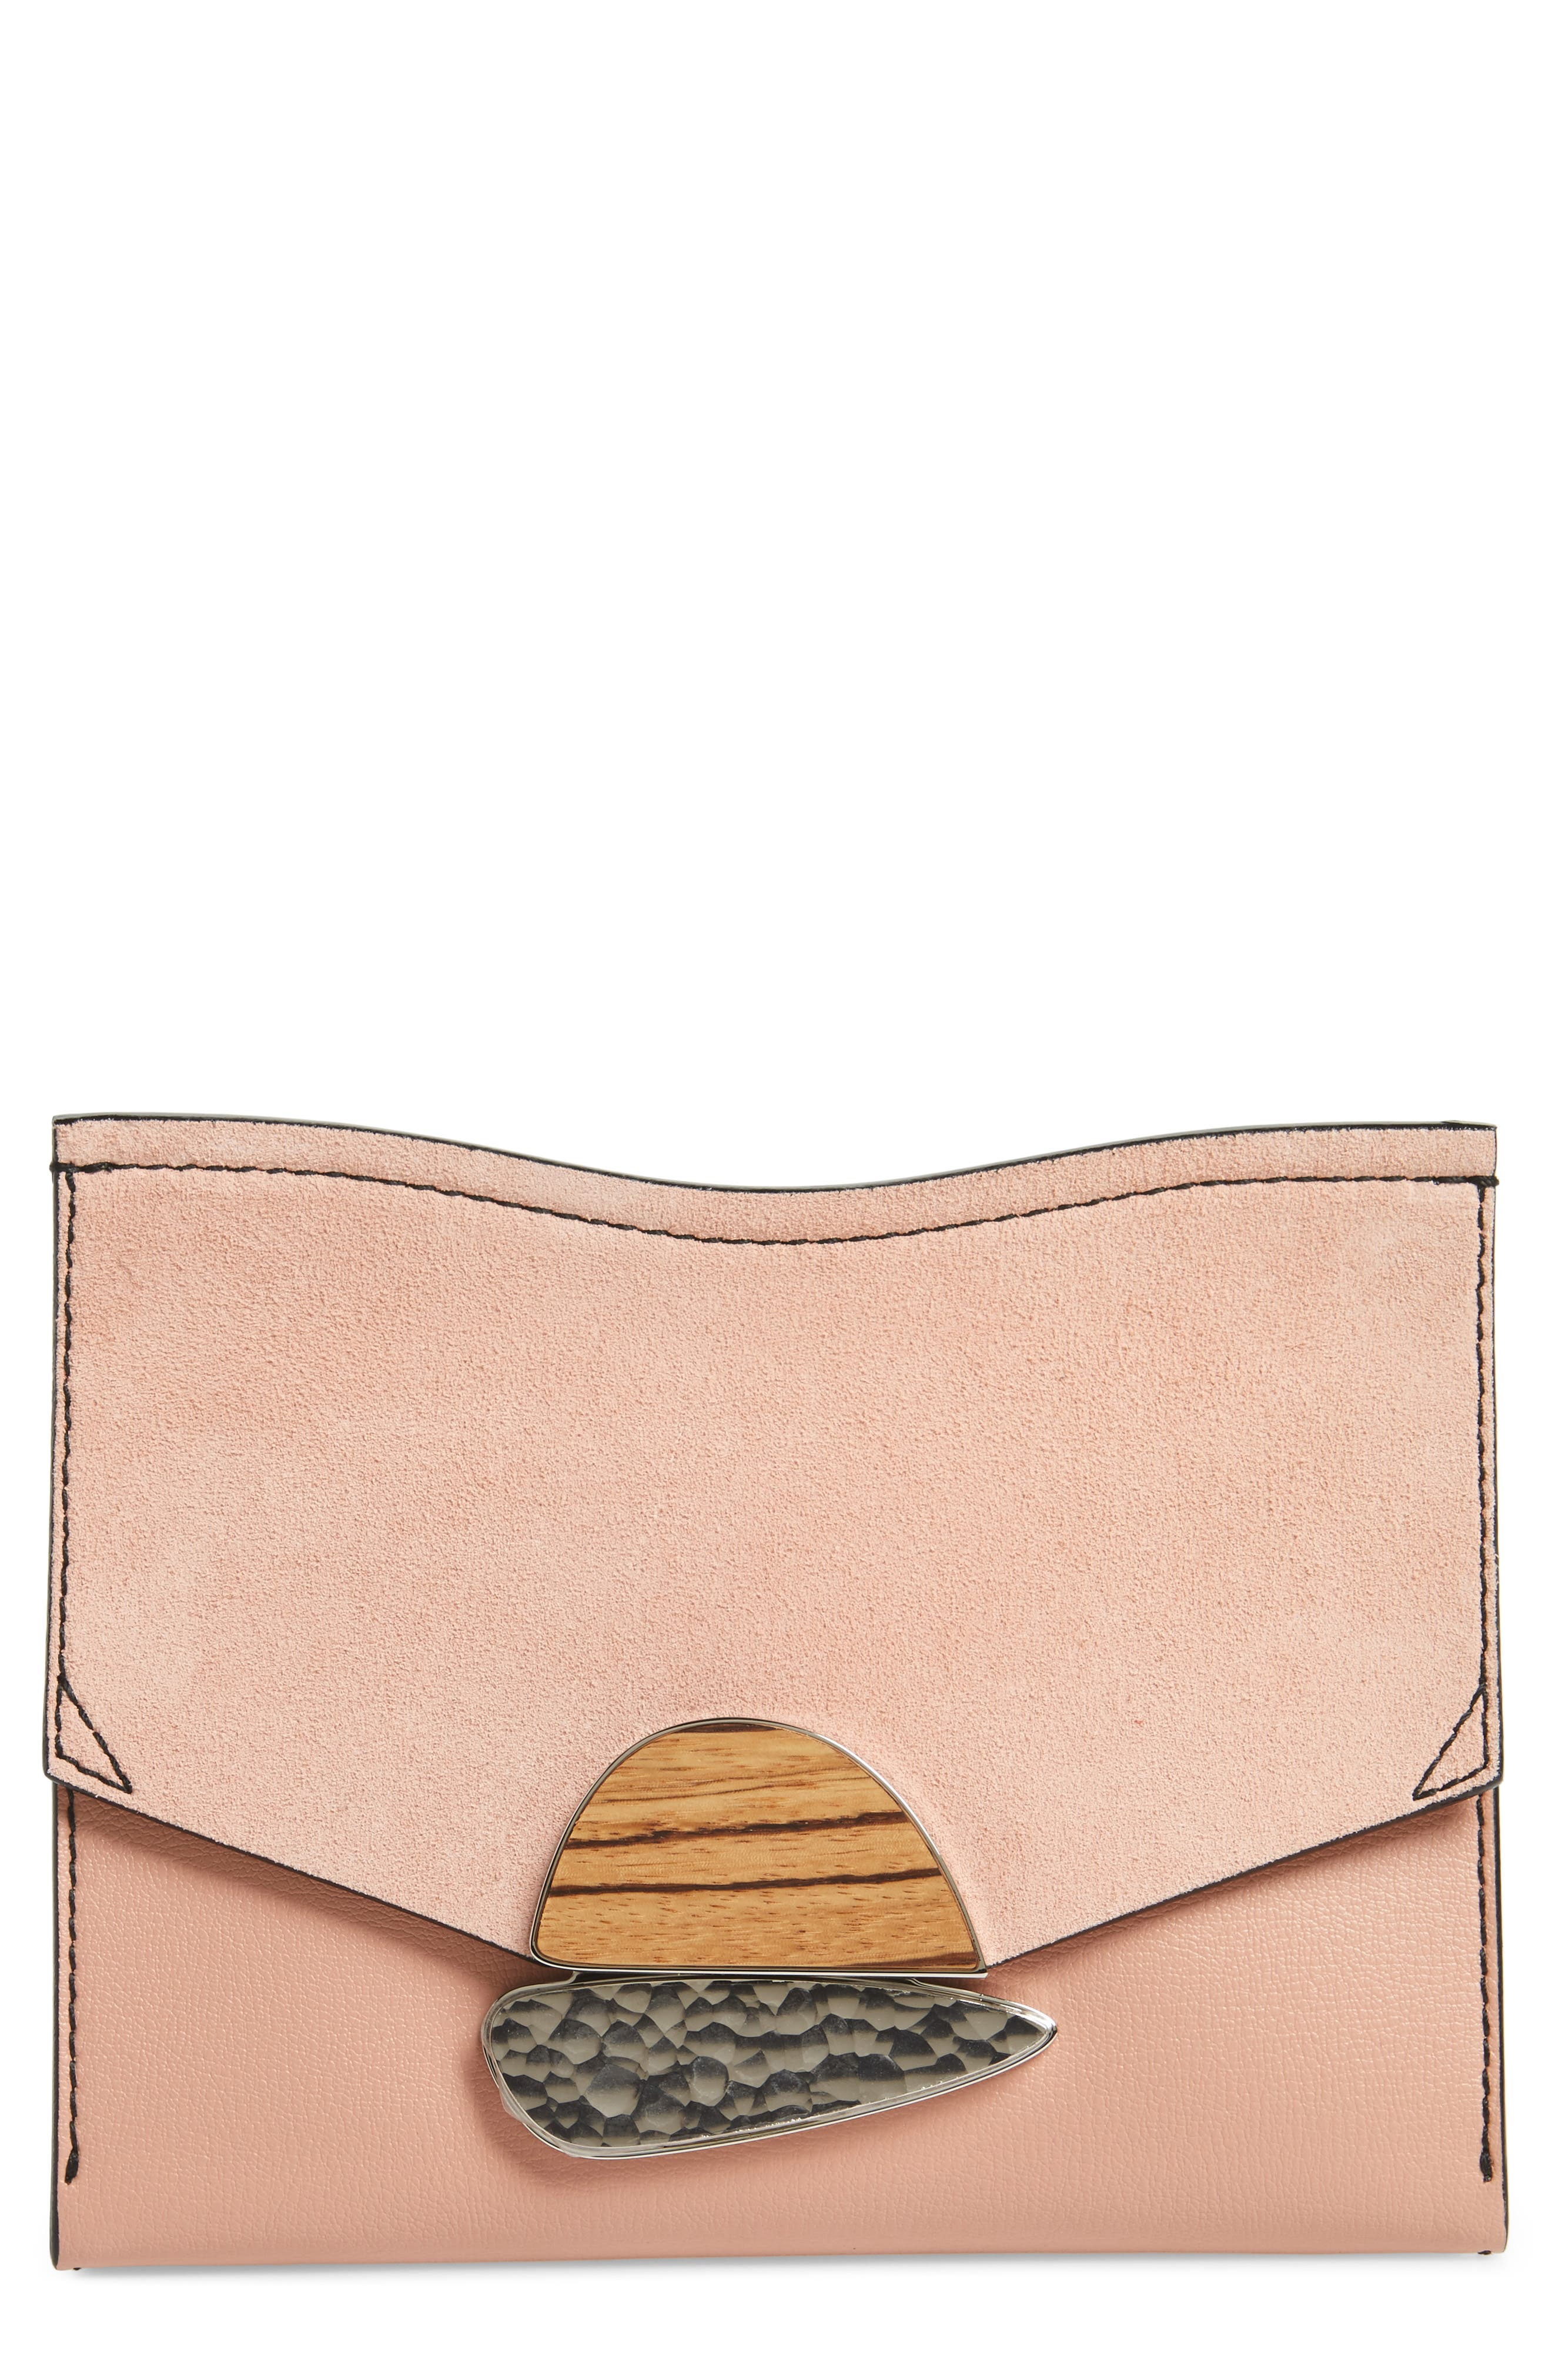 Small Calfskin Leather Clutch,                             Main thumbnail 1, color,                             Deep Blush